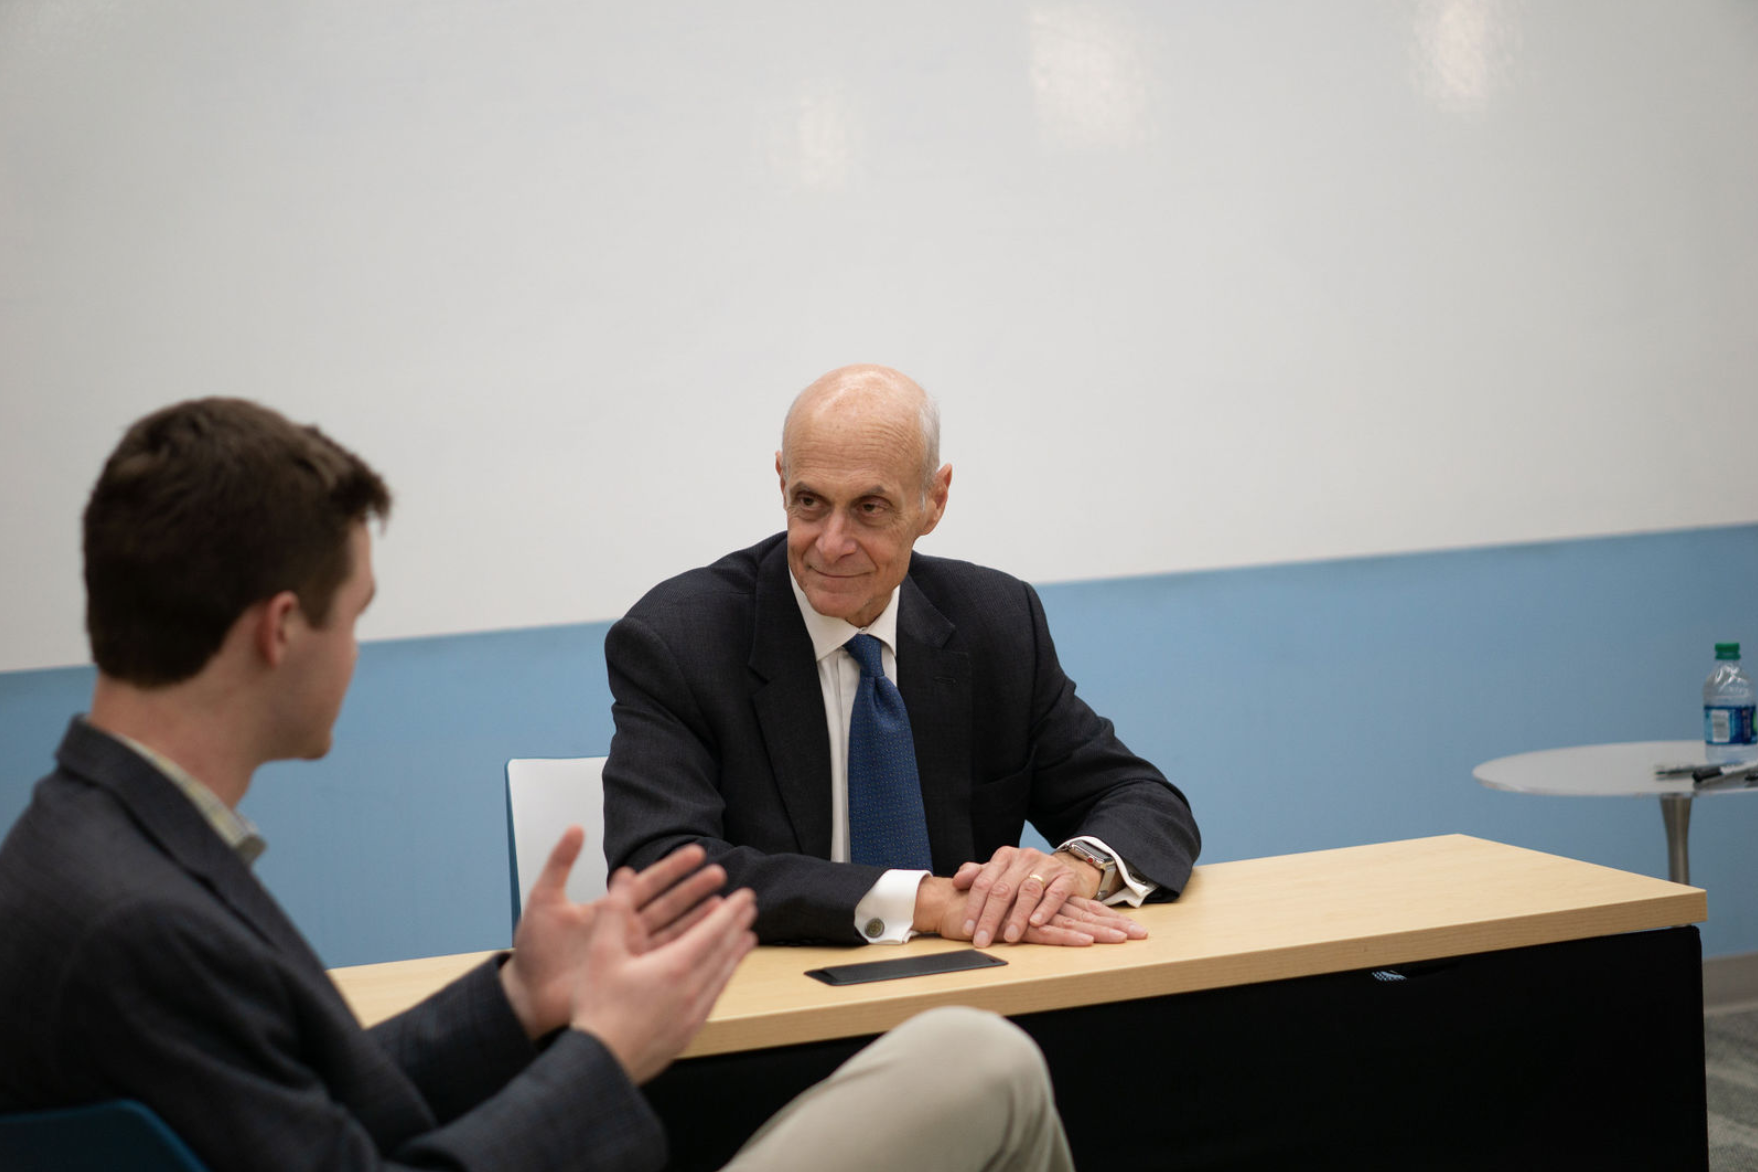 Former U.S. Secretary of Homeland Security Michael Chertoff with 2018-2019 Editor-in-Chief Parker Barth (Image:  Alexis Hinnant )